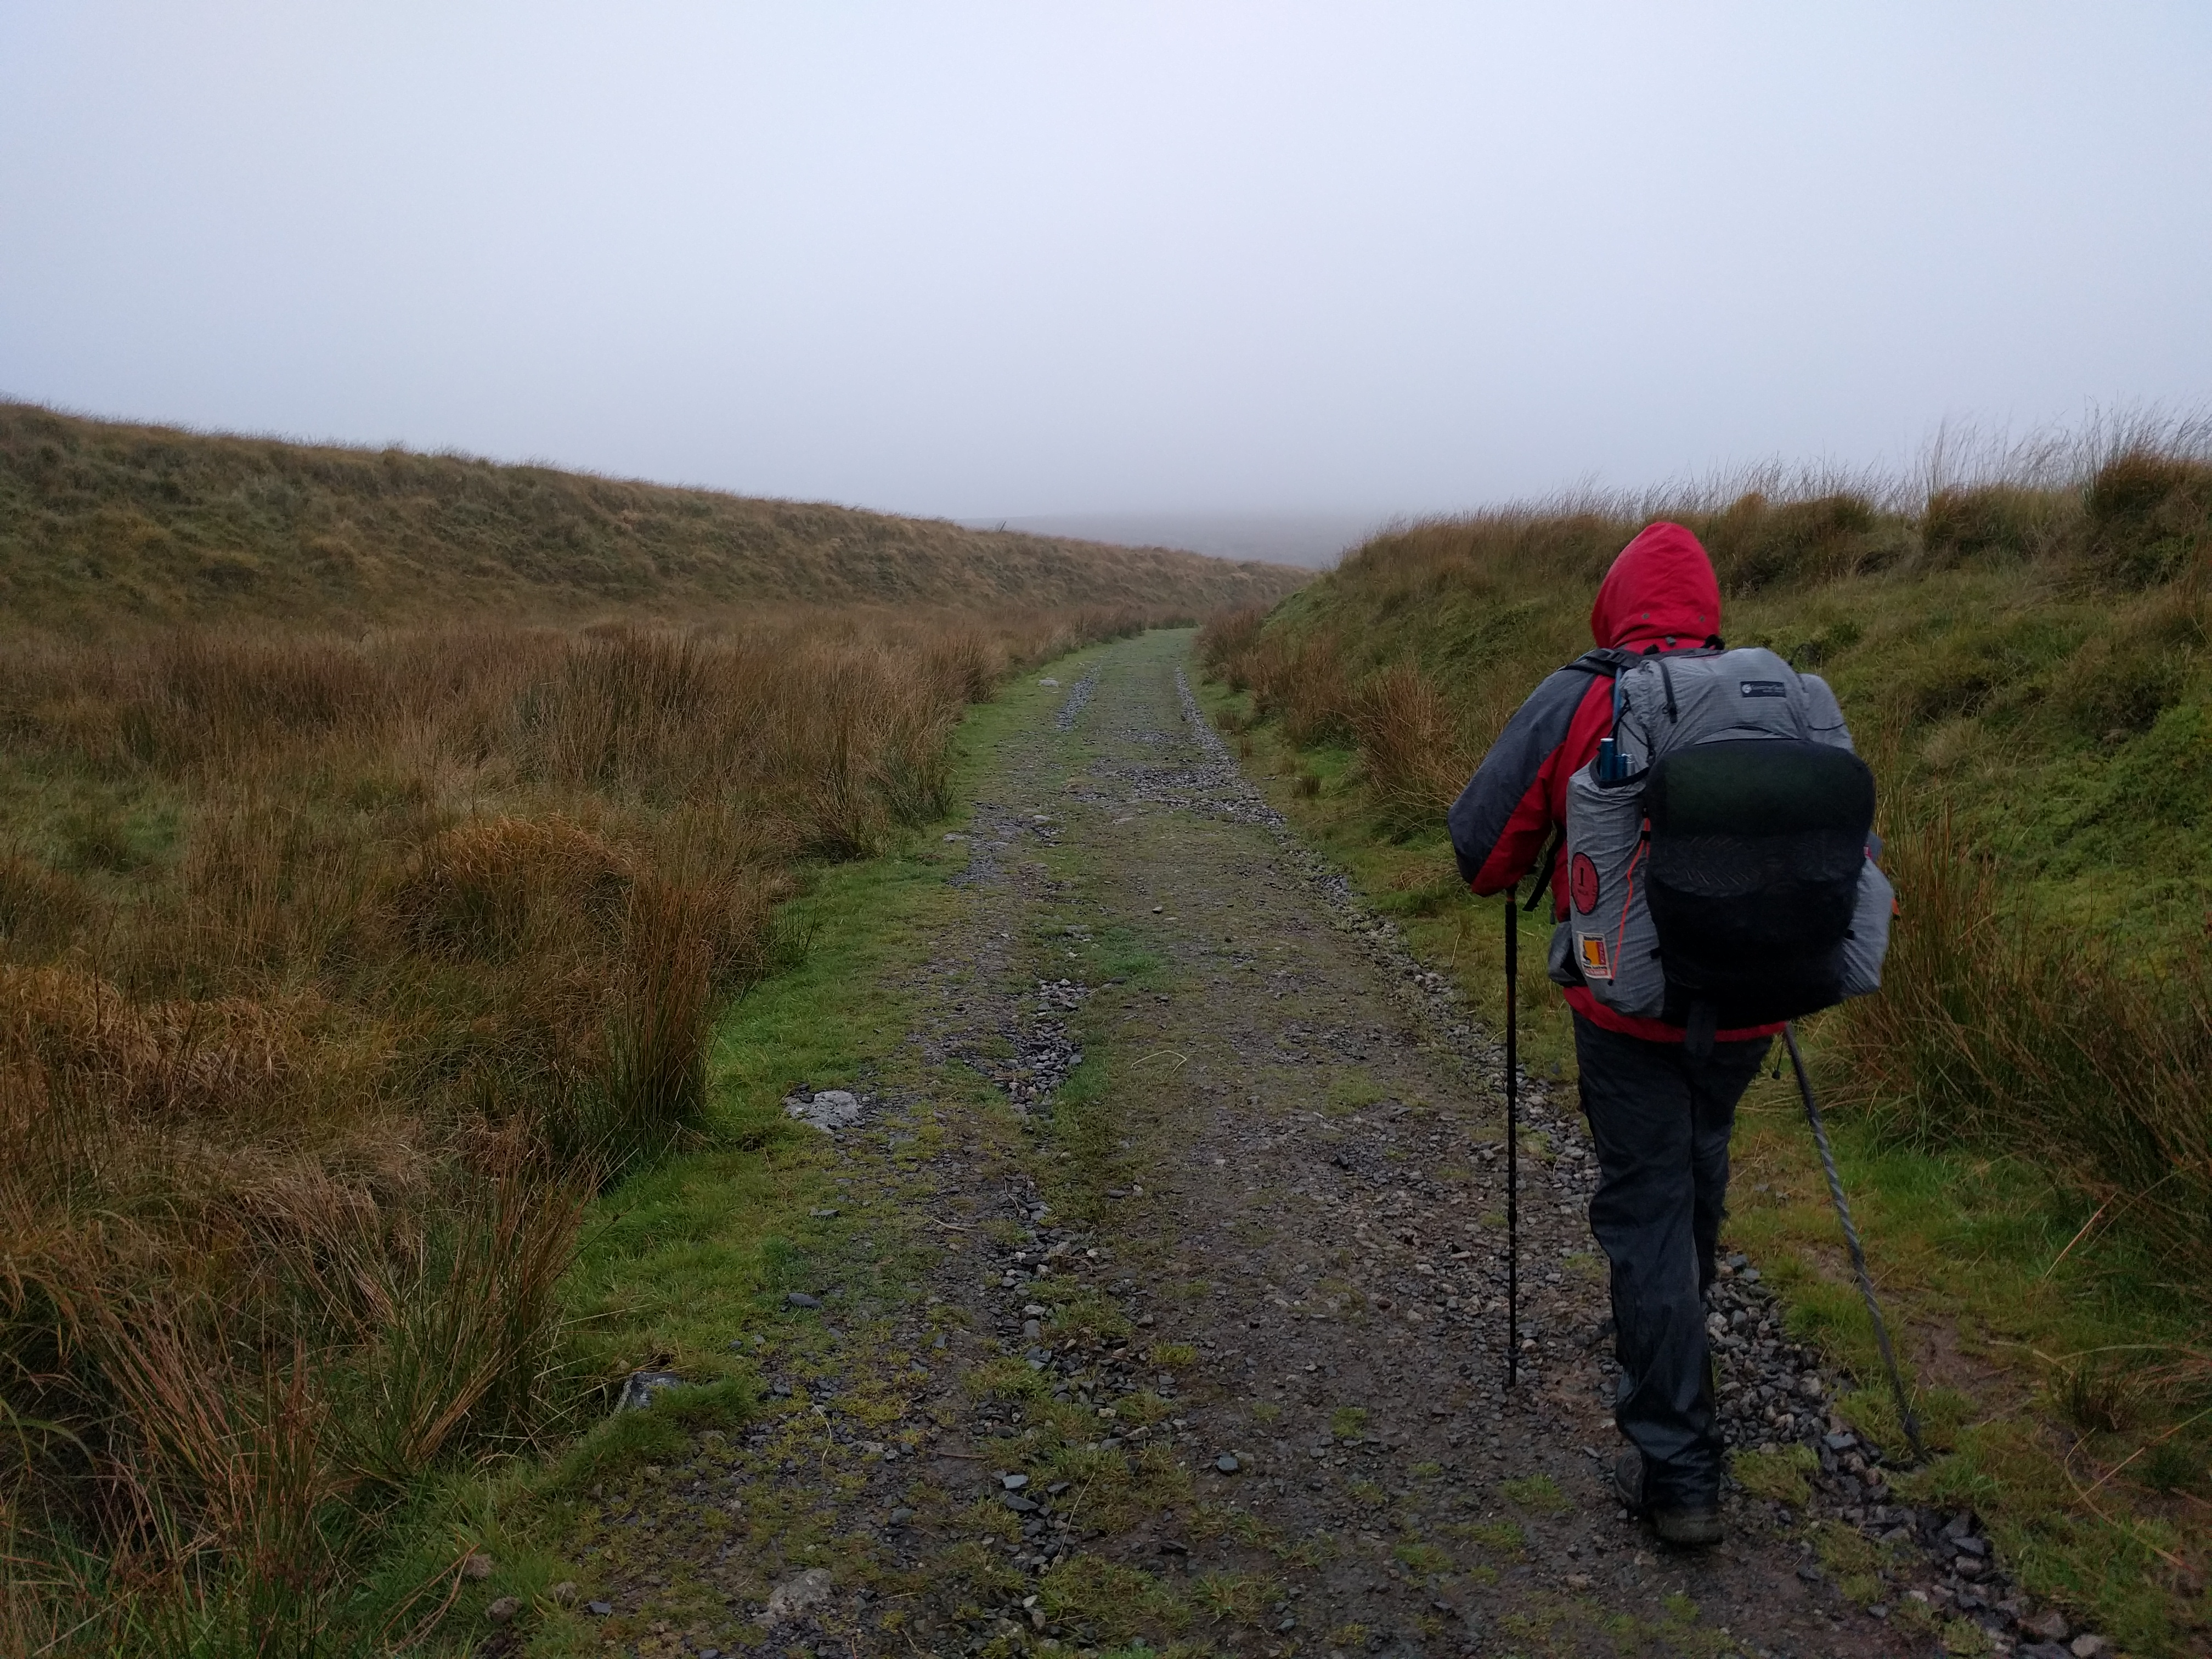 Heading along the old railway track #sh #twomoorsway